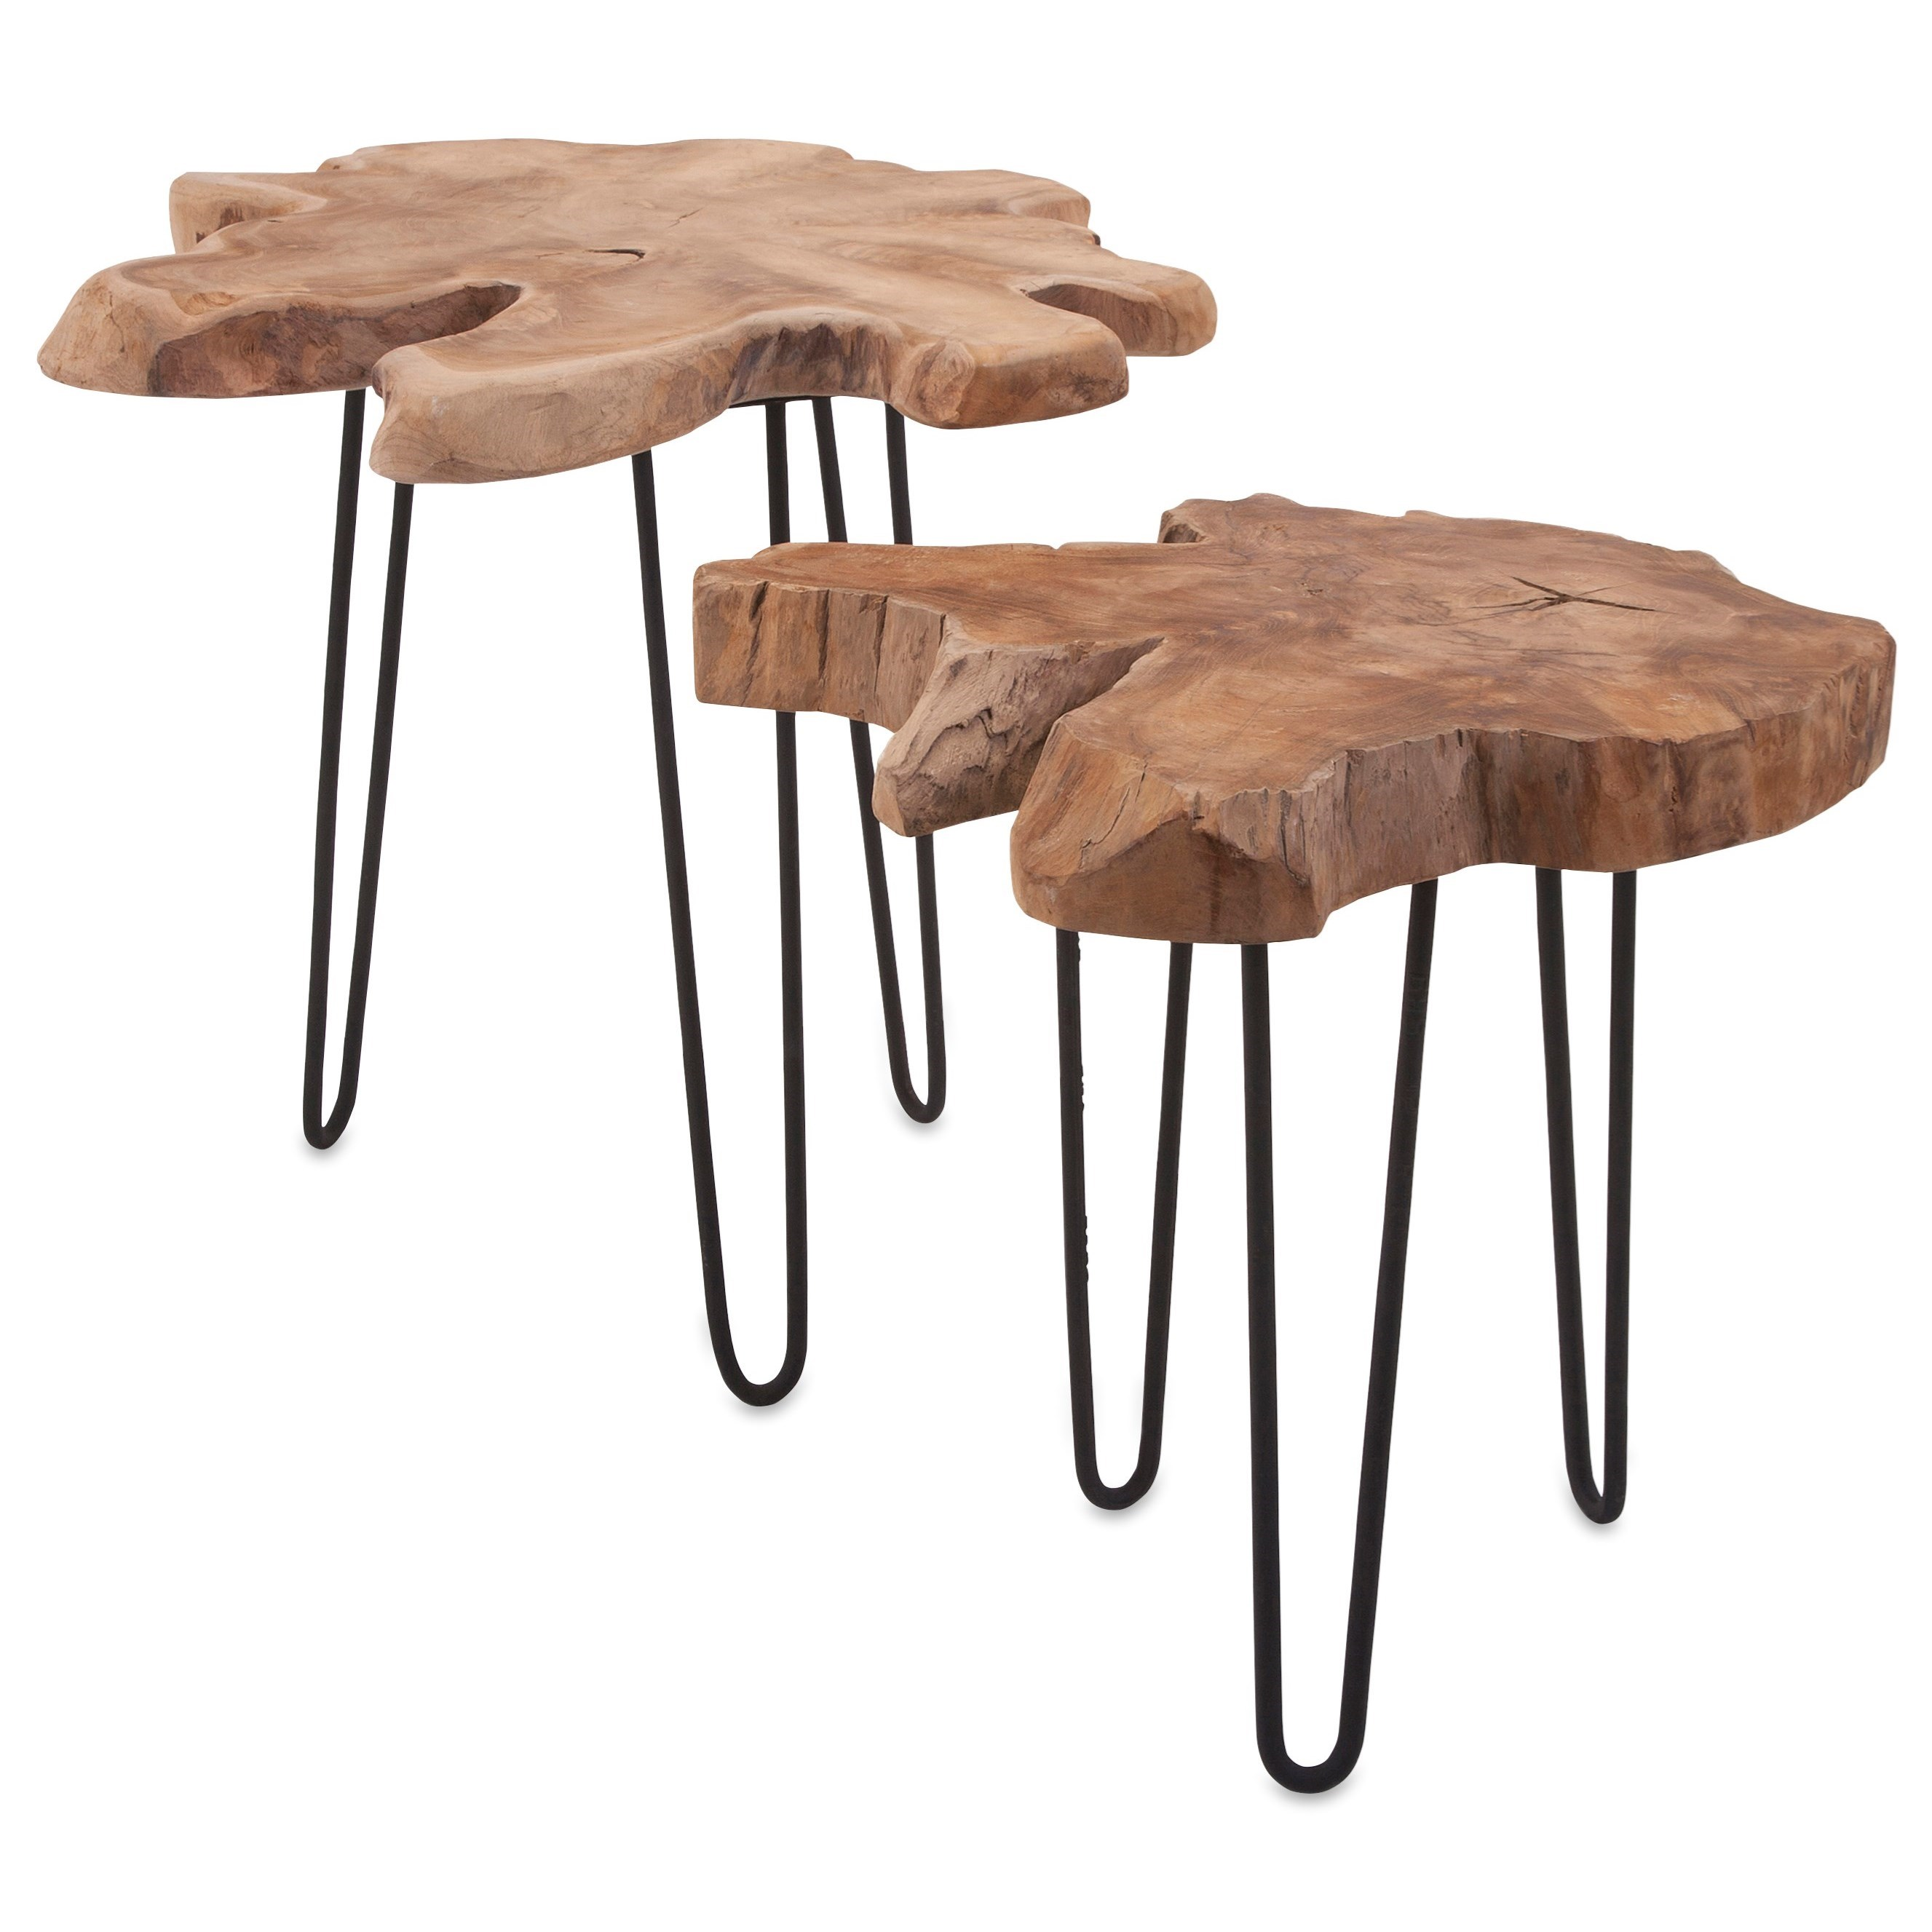 Accent Tables and Cabinets Baltra Teak Wood Nesting Tables - Set of 2 by IMAX Worldwide Home at Alison Craig Home Furnishings